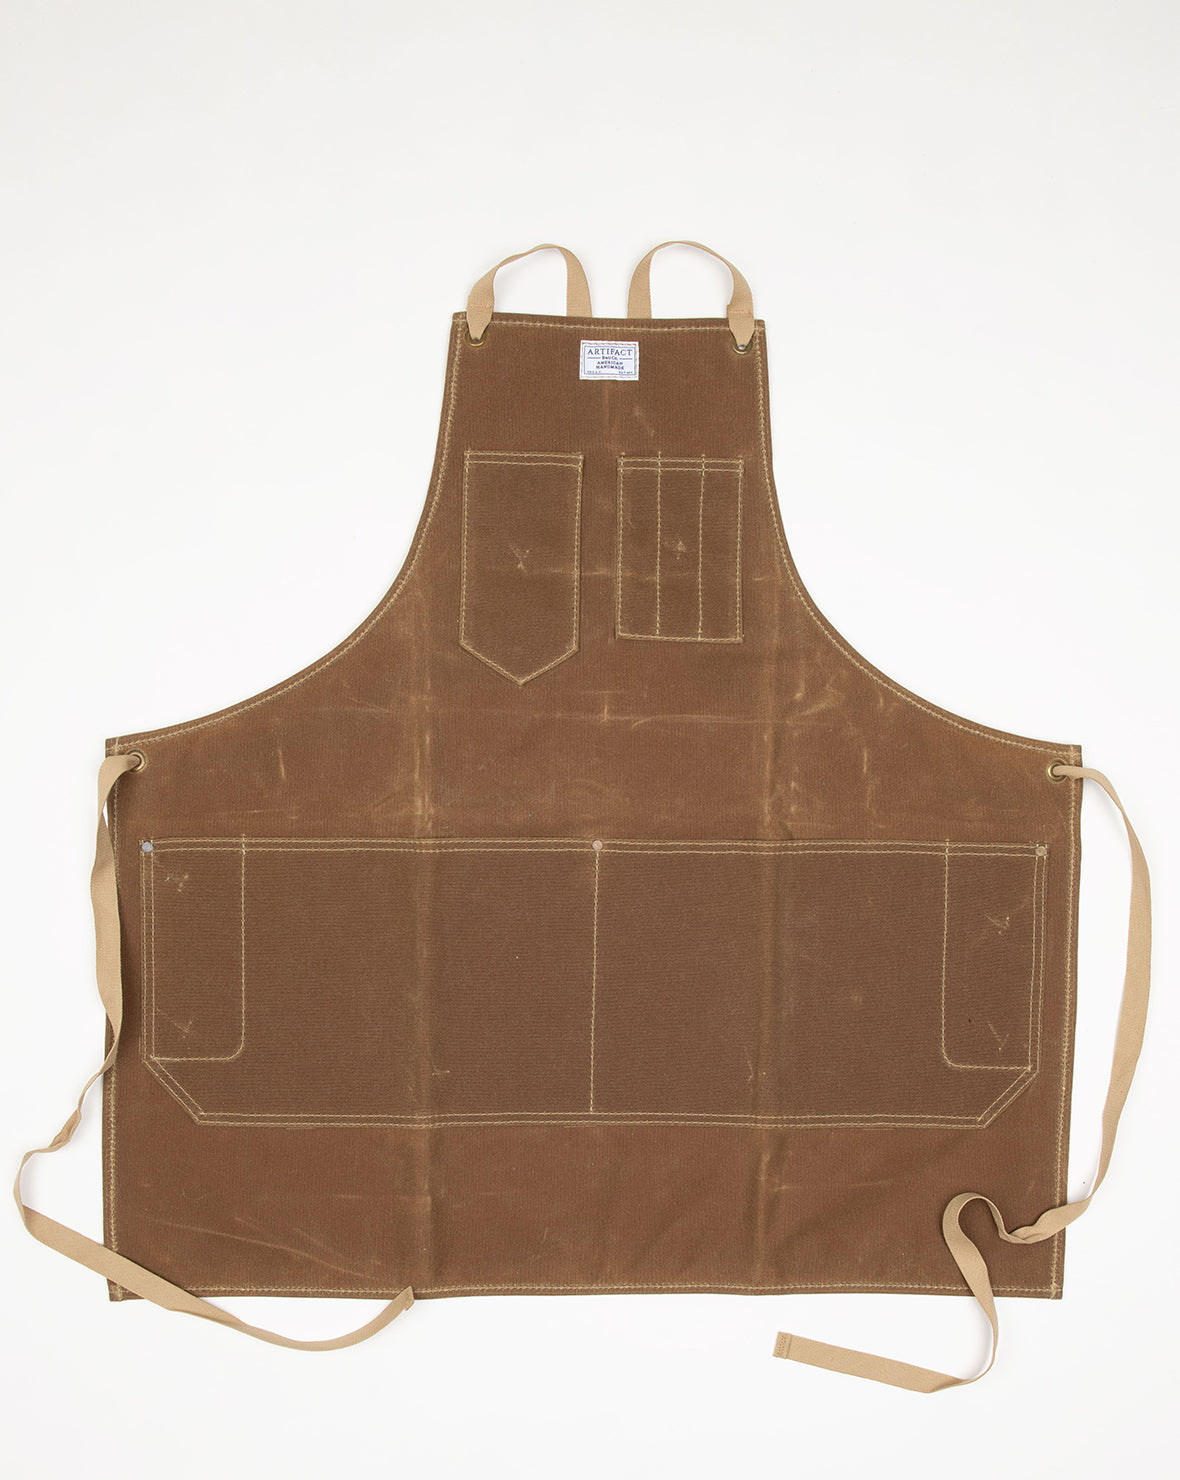 ARTIFACT Rust Wax Canvas Apron w/ Cotton Crossback Ties SMALL - SALE